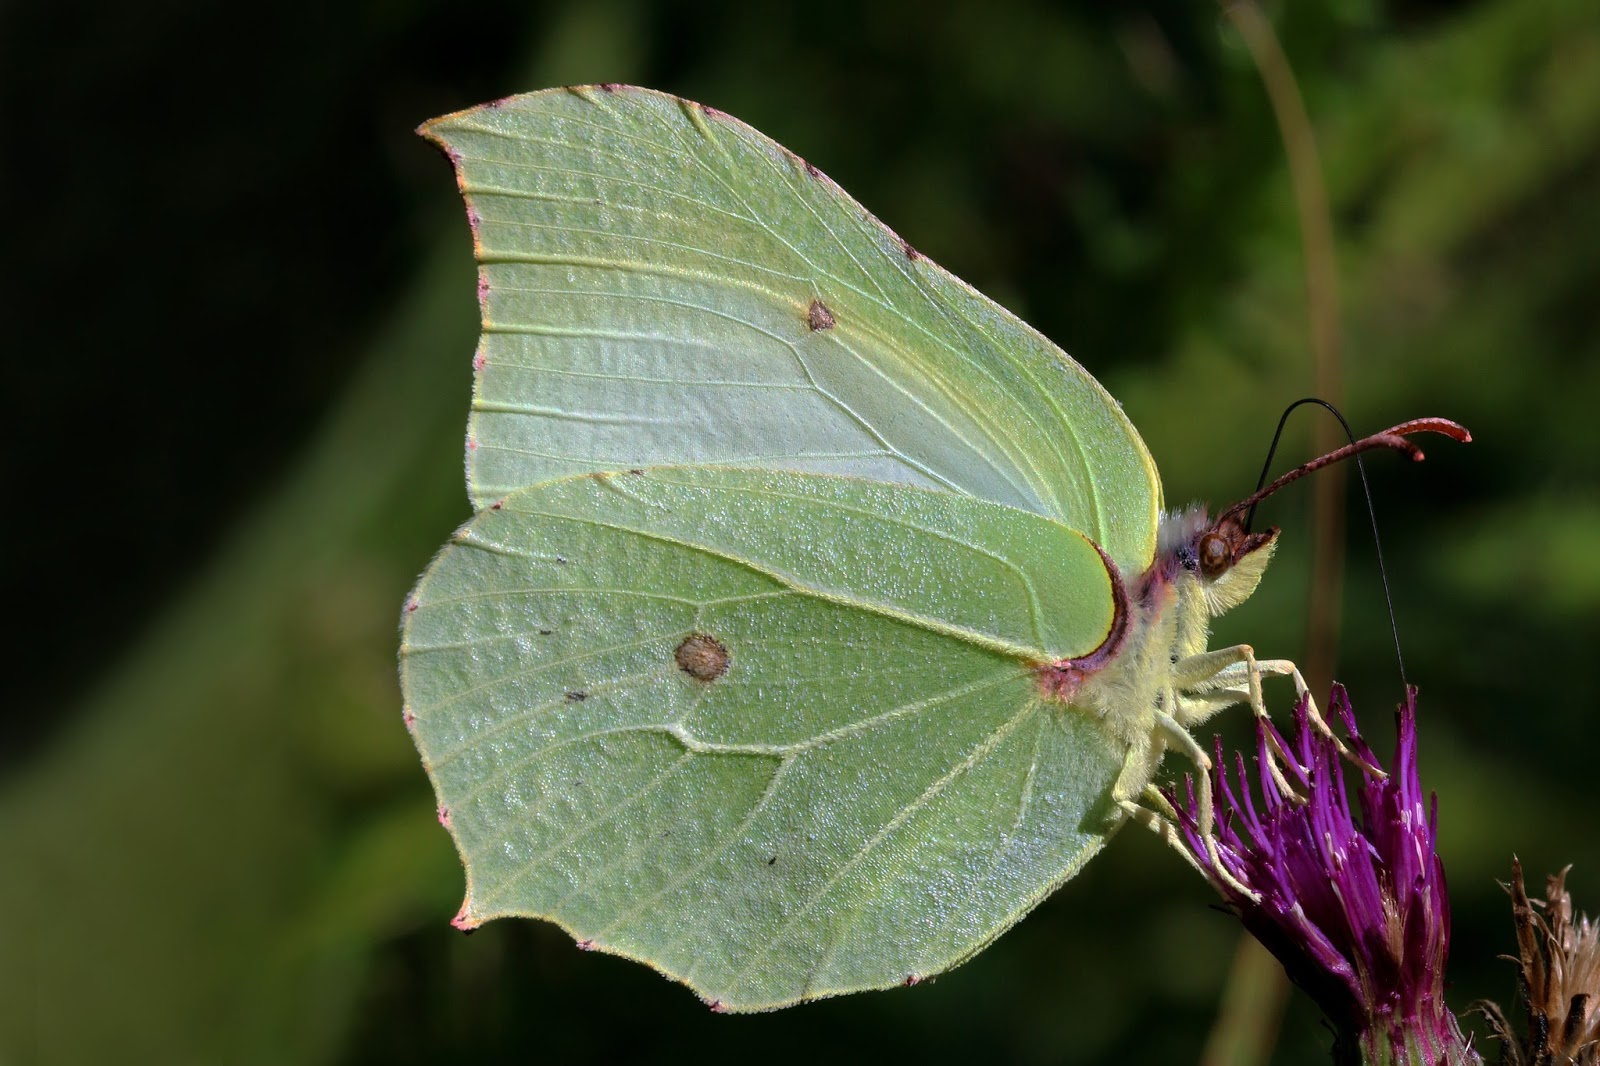 Insects: Common brimstone butterfly (Gonepteryx rhamni) male